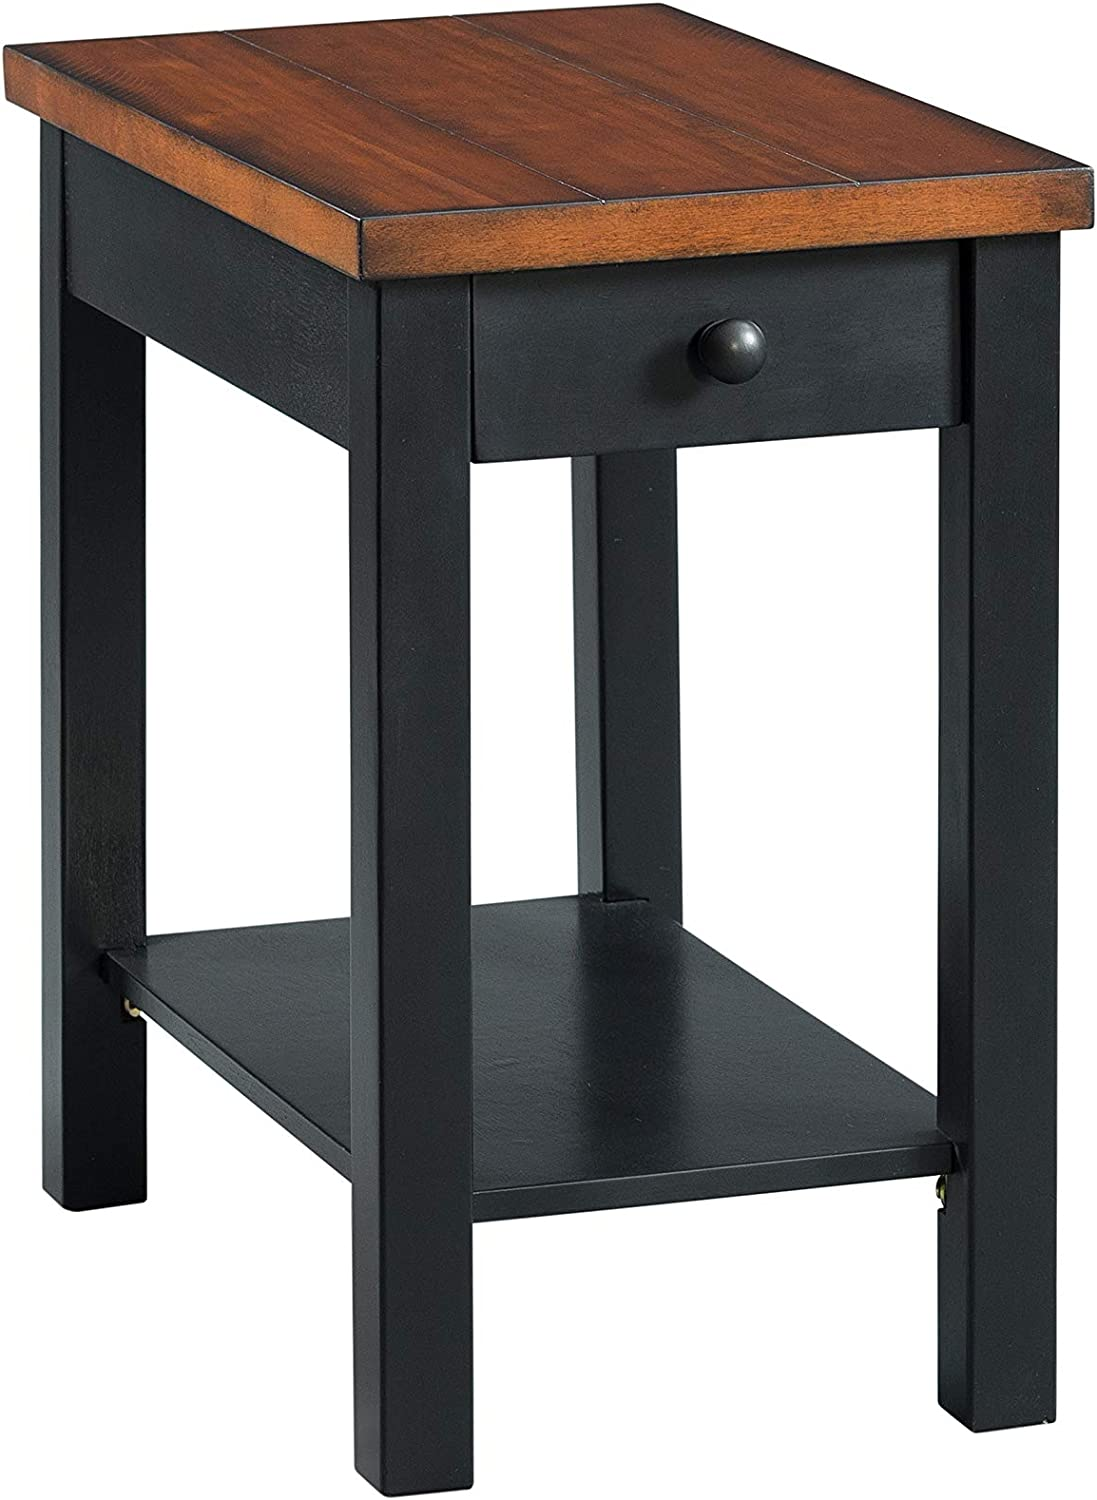 Lane Home Furnishings Chairside Table - Power, Lift-Top Cocktail, Black